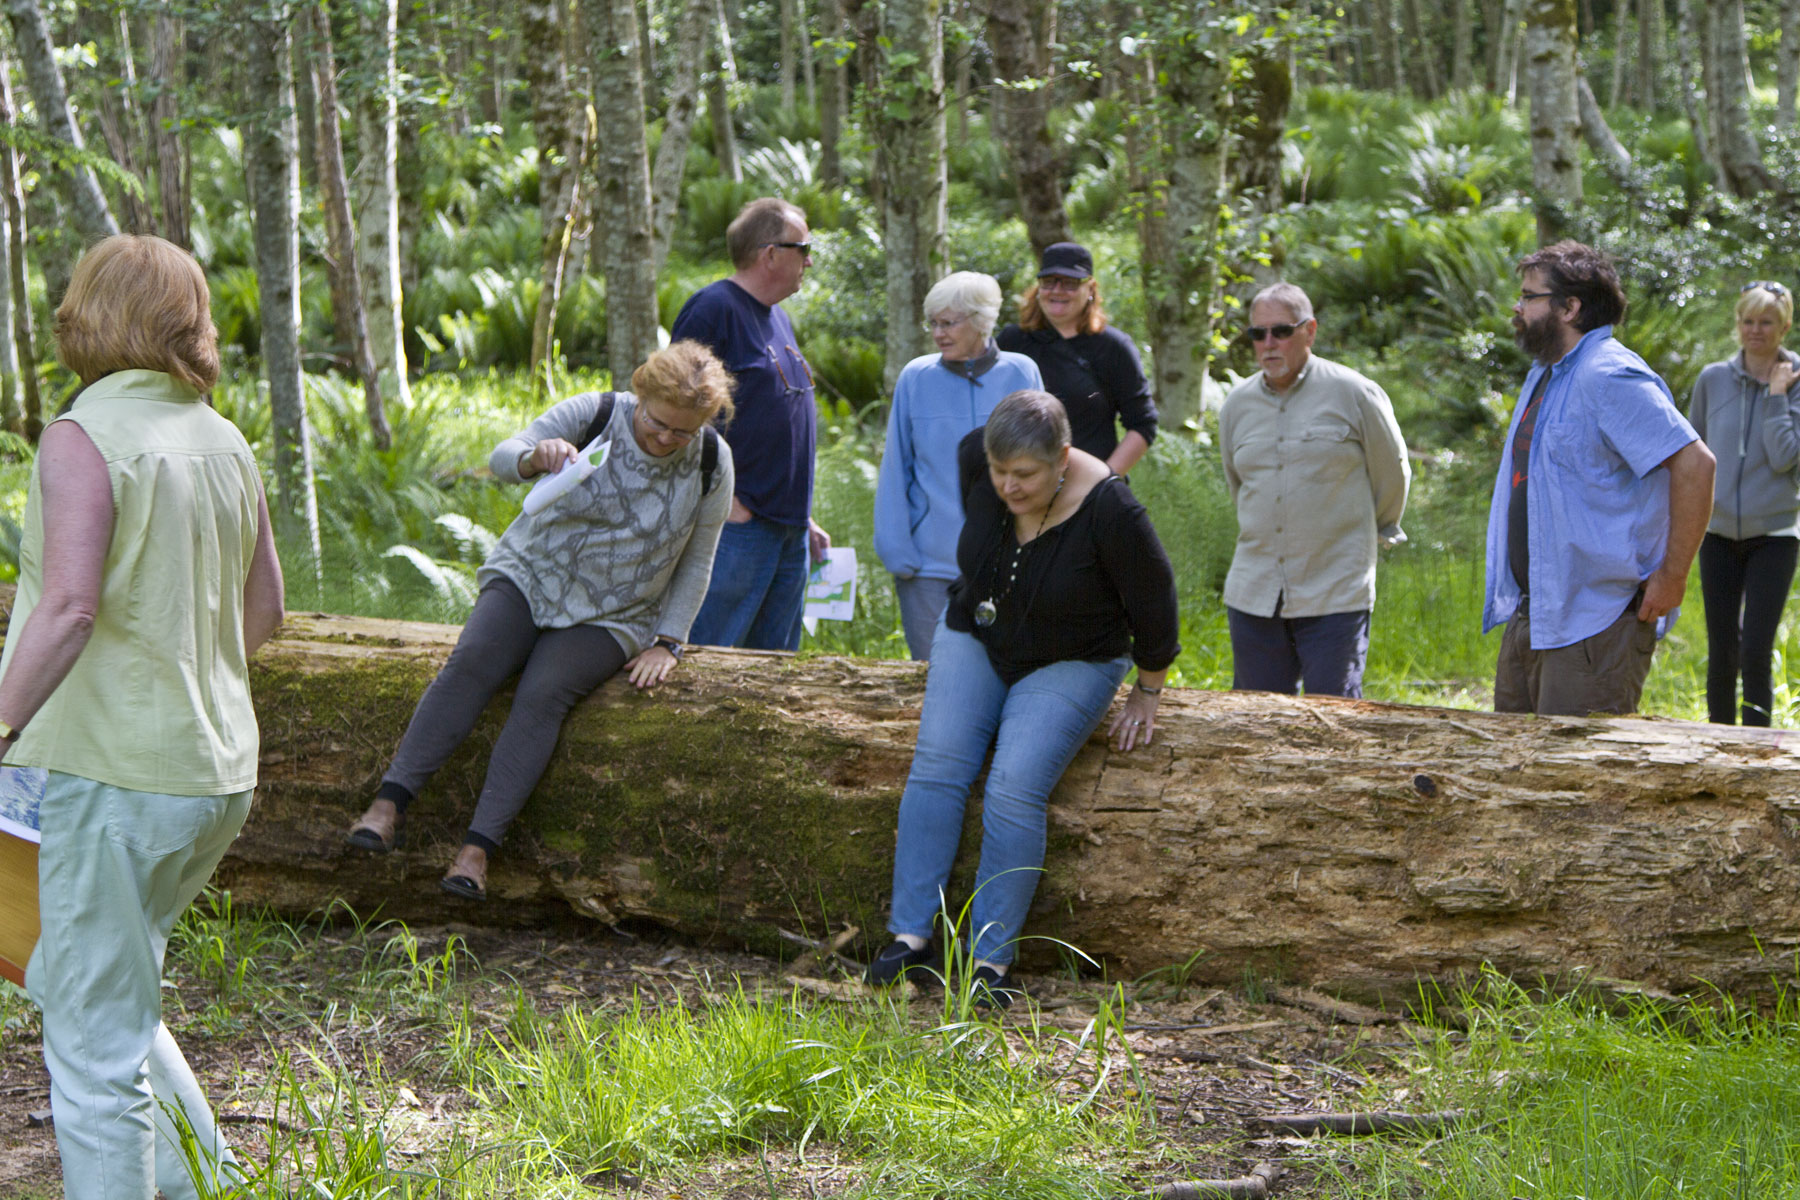 People clambering over a fallen log